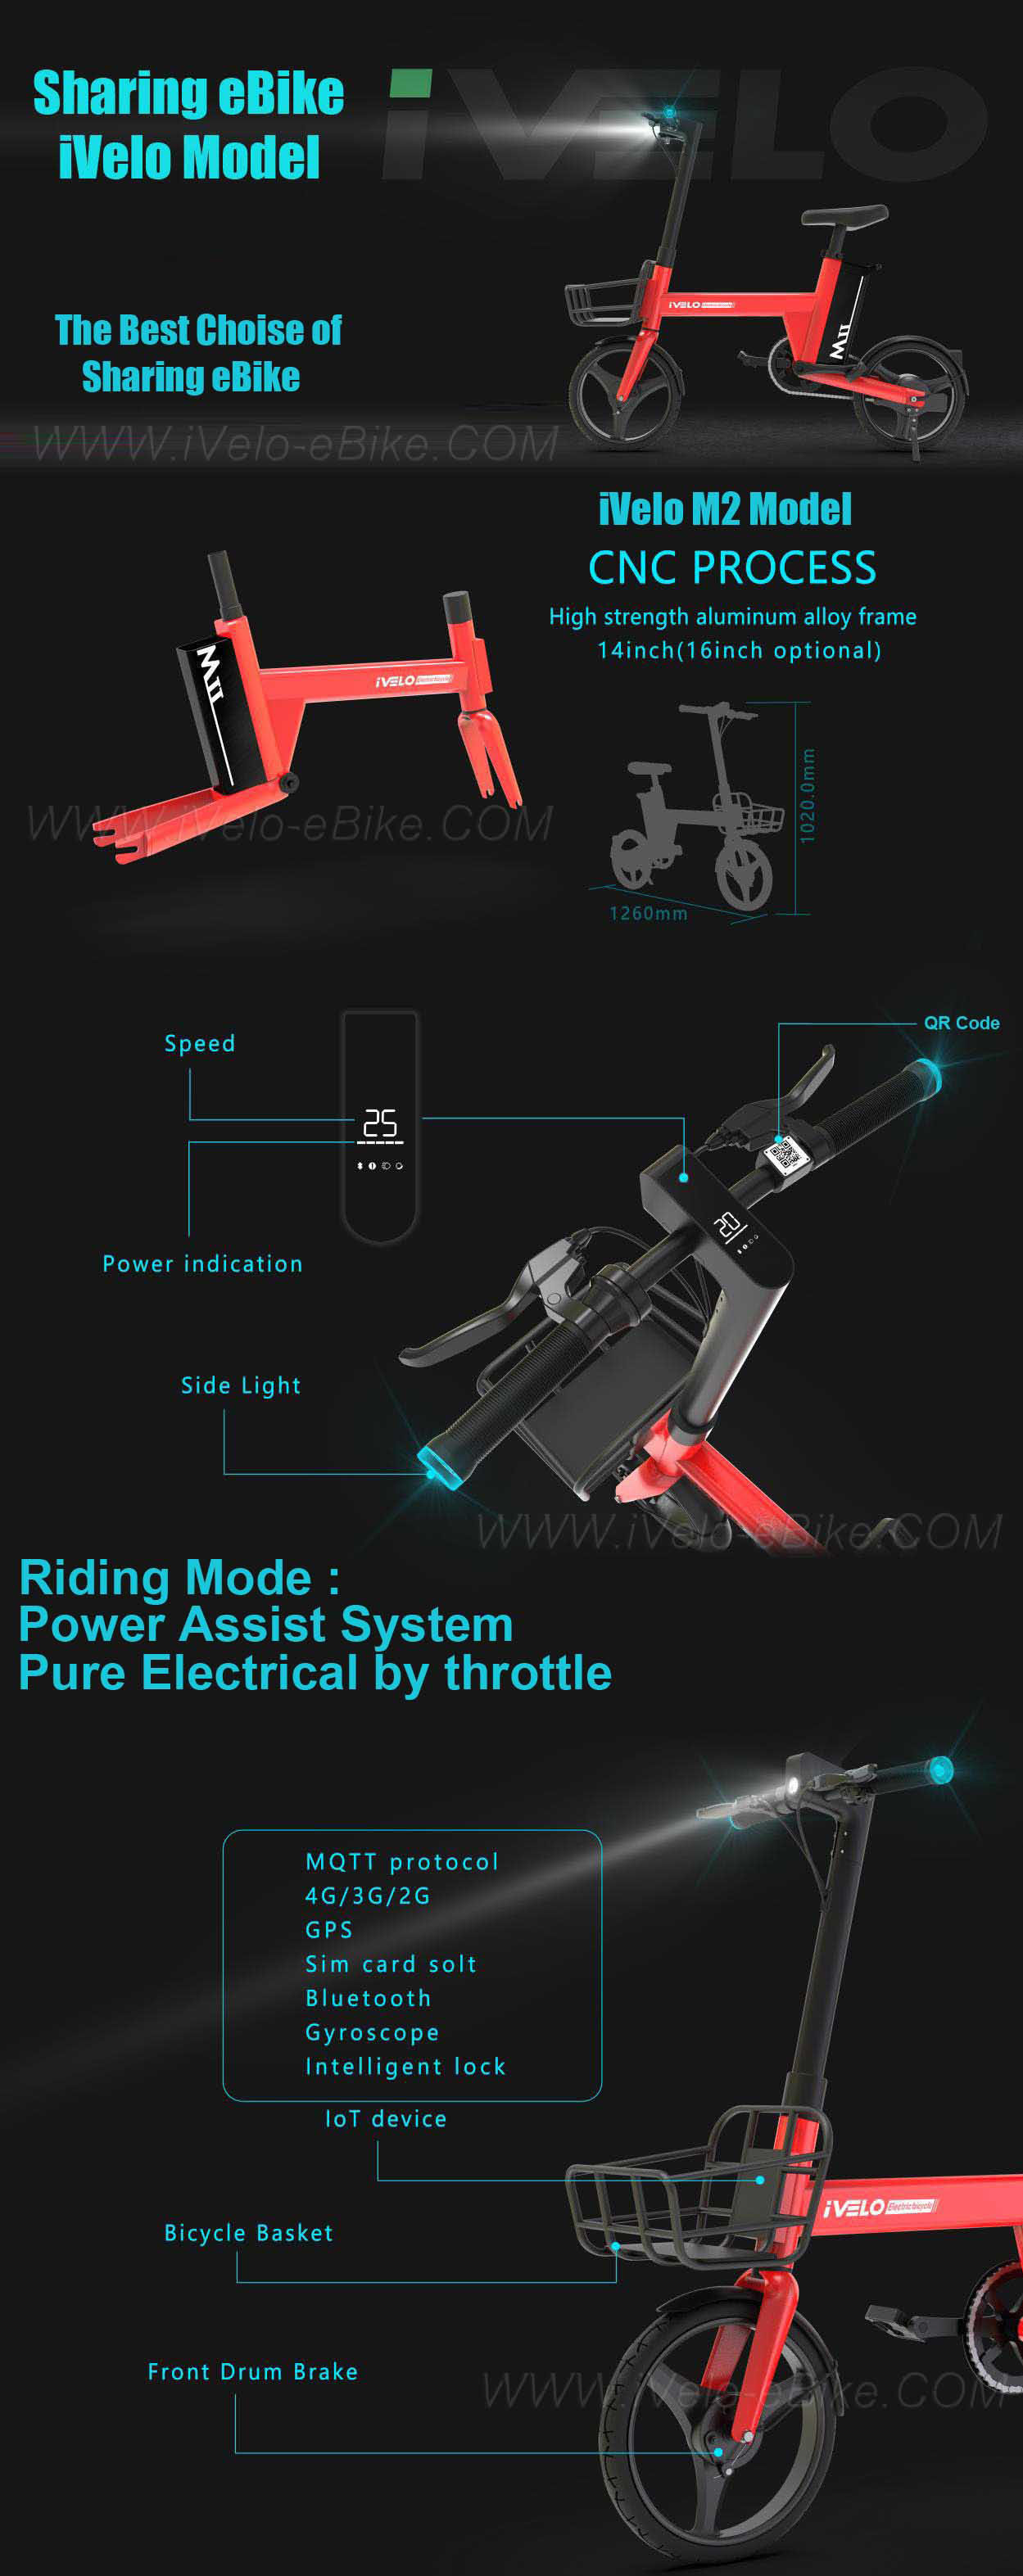 fitrider M2 ivelo sharing electric bicycle